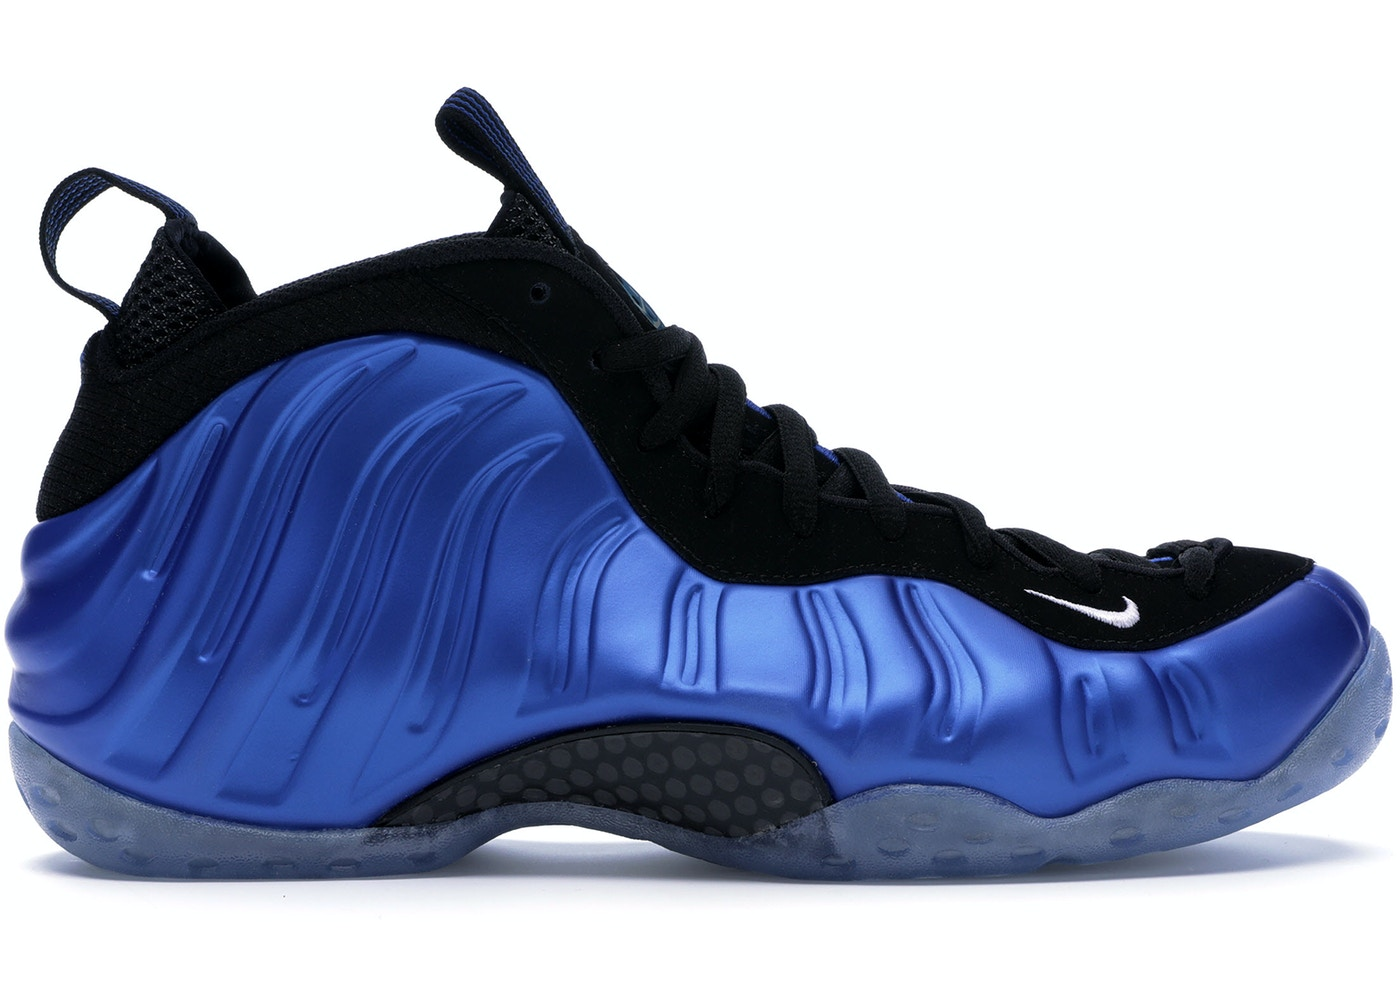 big sale 9d561 3e52b Air Foamposite One Royal Blue XX 20th Anniversary (2017) - 895320-500